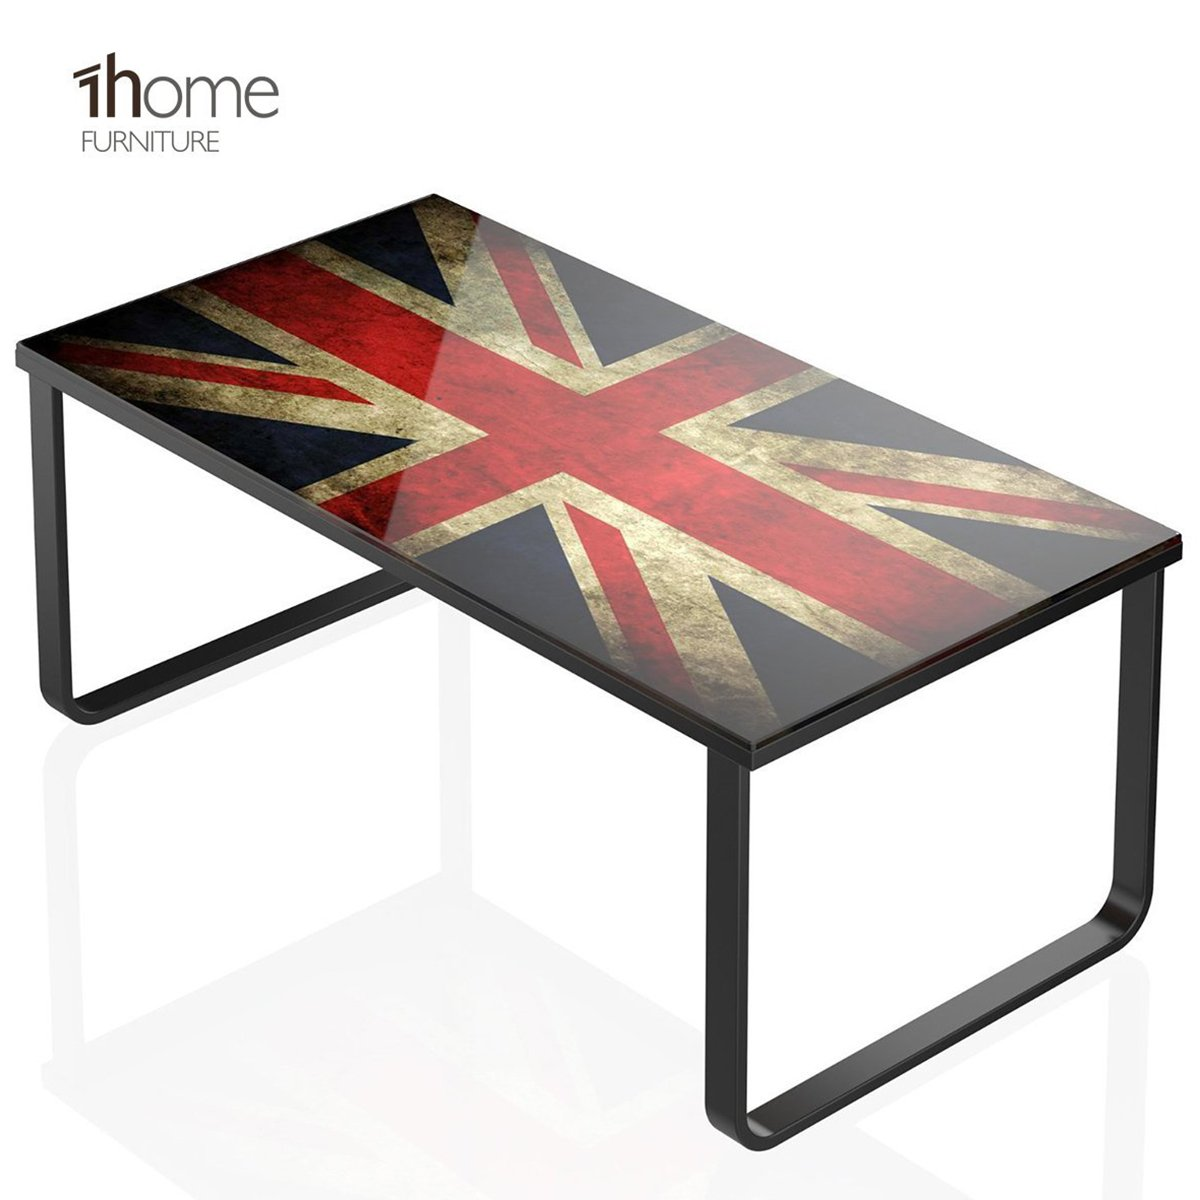 1home GSide Table/Coffe High Gloss Tempered Glass Union Jack Printed ...